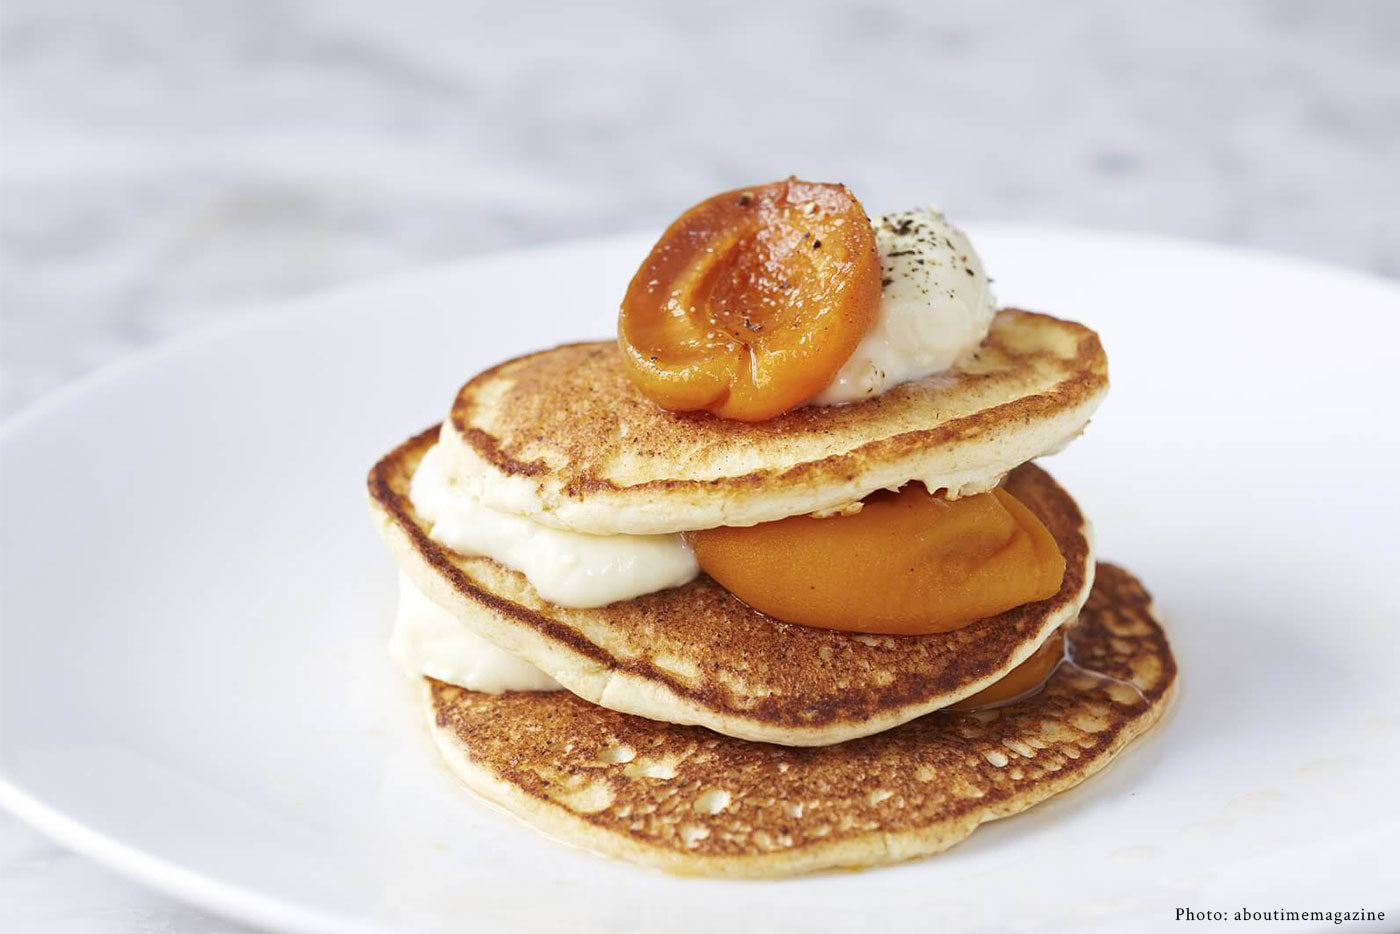 No. 11 Pimlico Road | best places to eat pancakes for pancake day